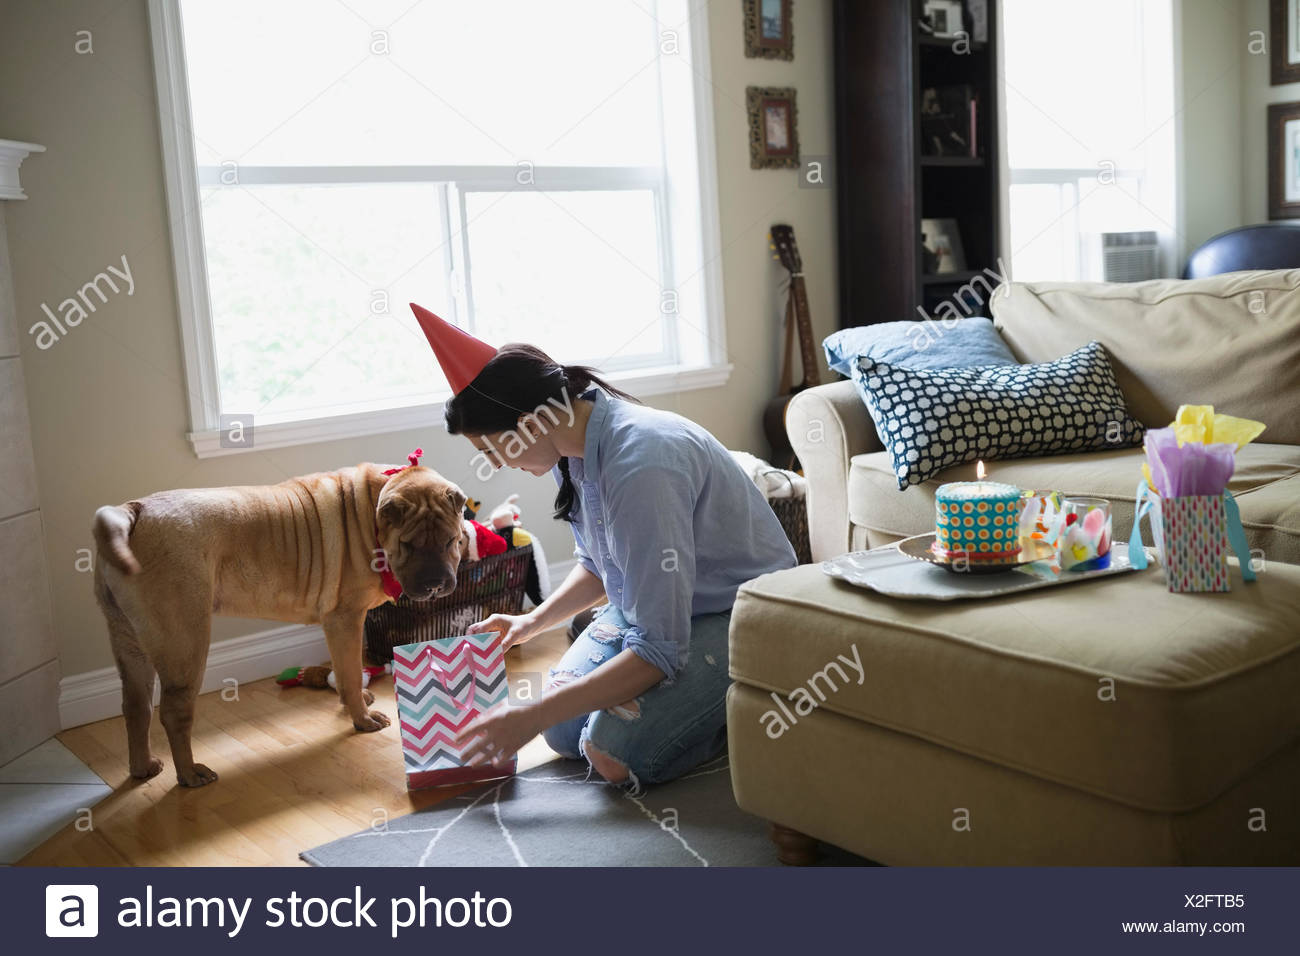 Woman giving dog birthday gift in living room - Stock Image